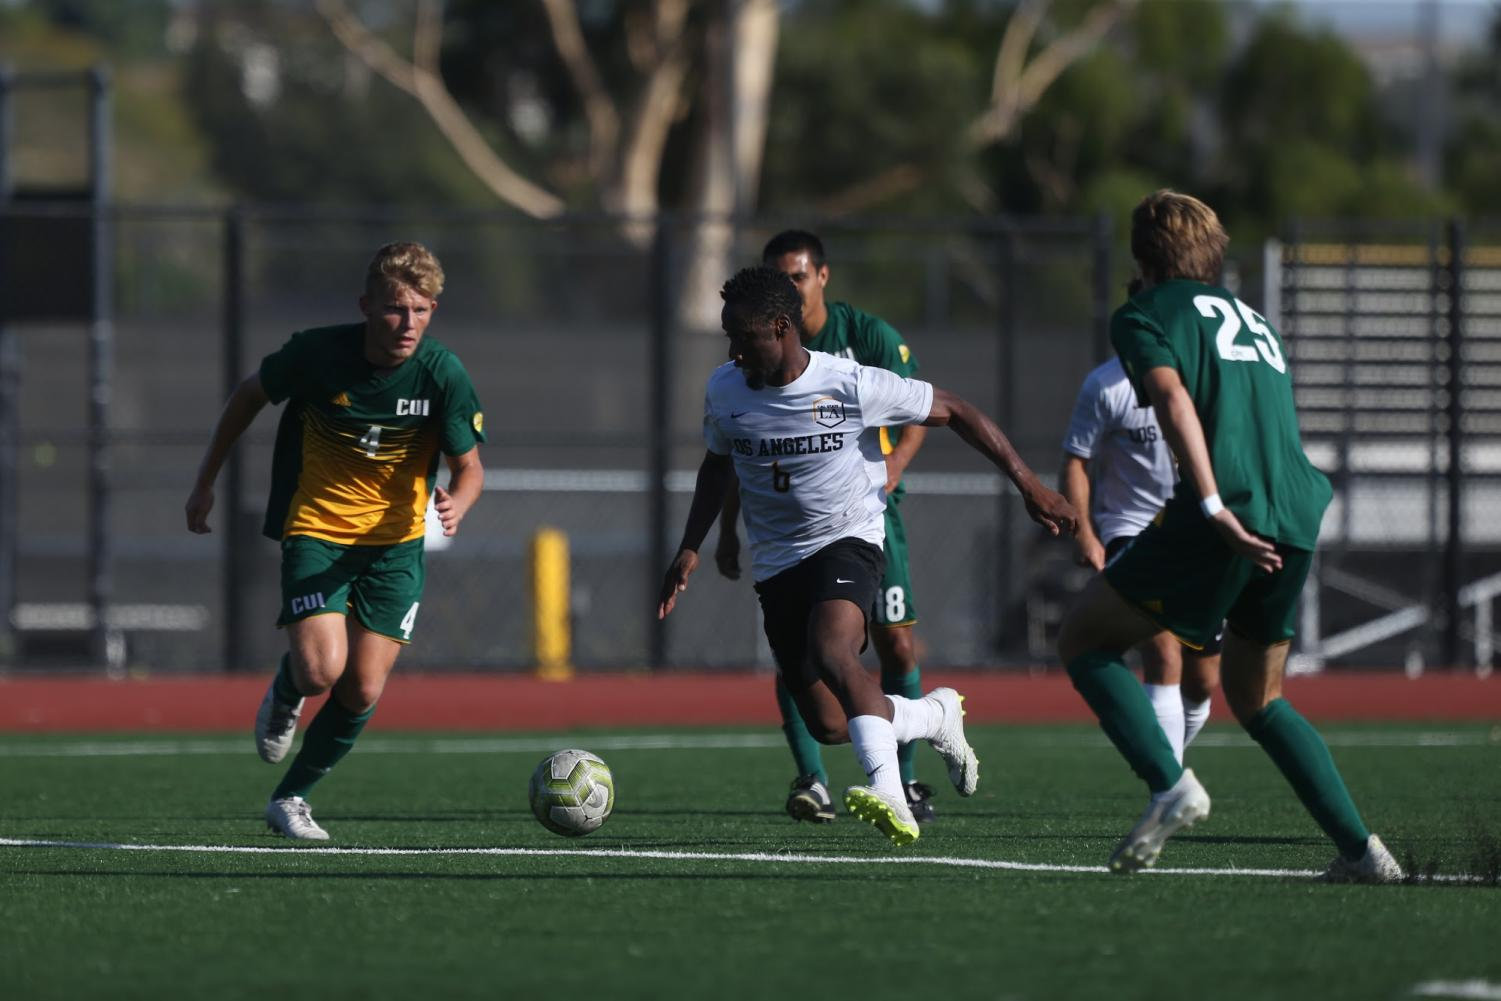 Cal State LA forward Cyrille Njomo (center) fights to keep possession of the ball against the Concordia Irvine eagles.